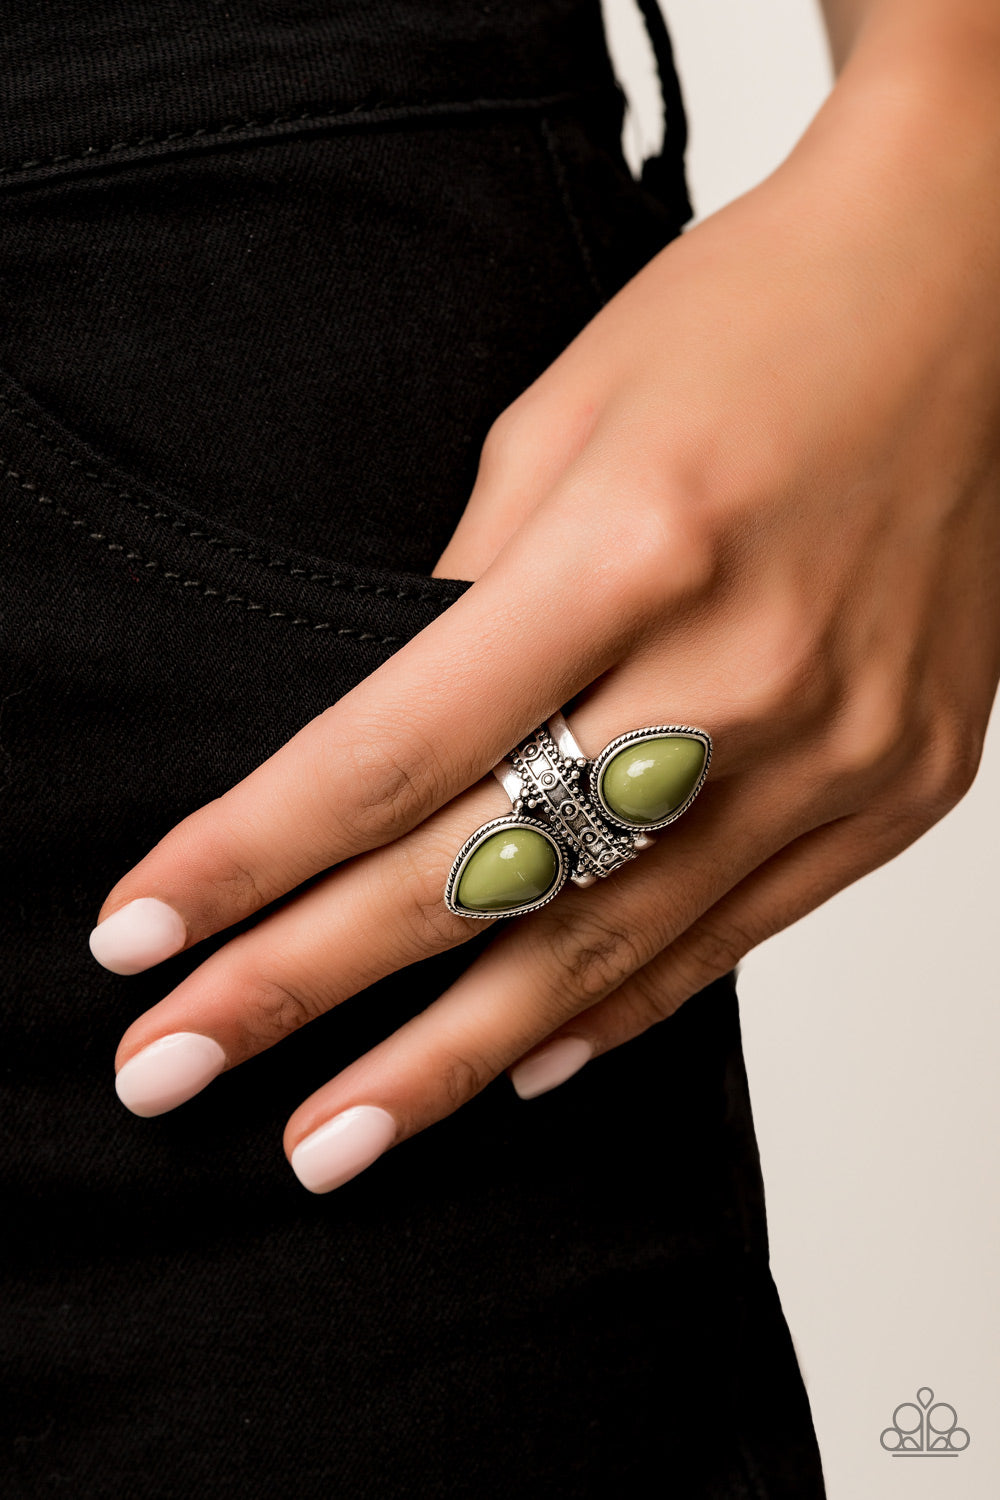 Paparazzi - New Age Leader Ring - Classy Jewels by Linda